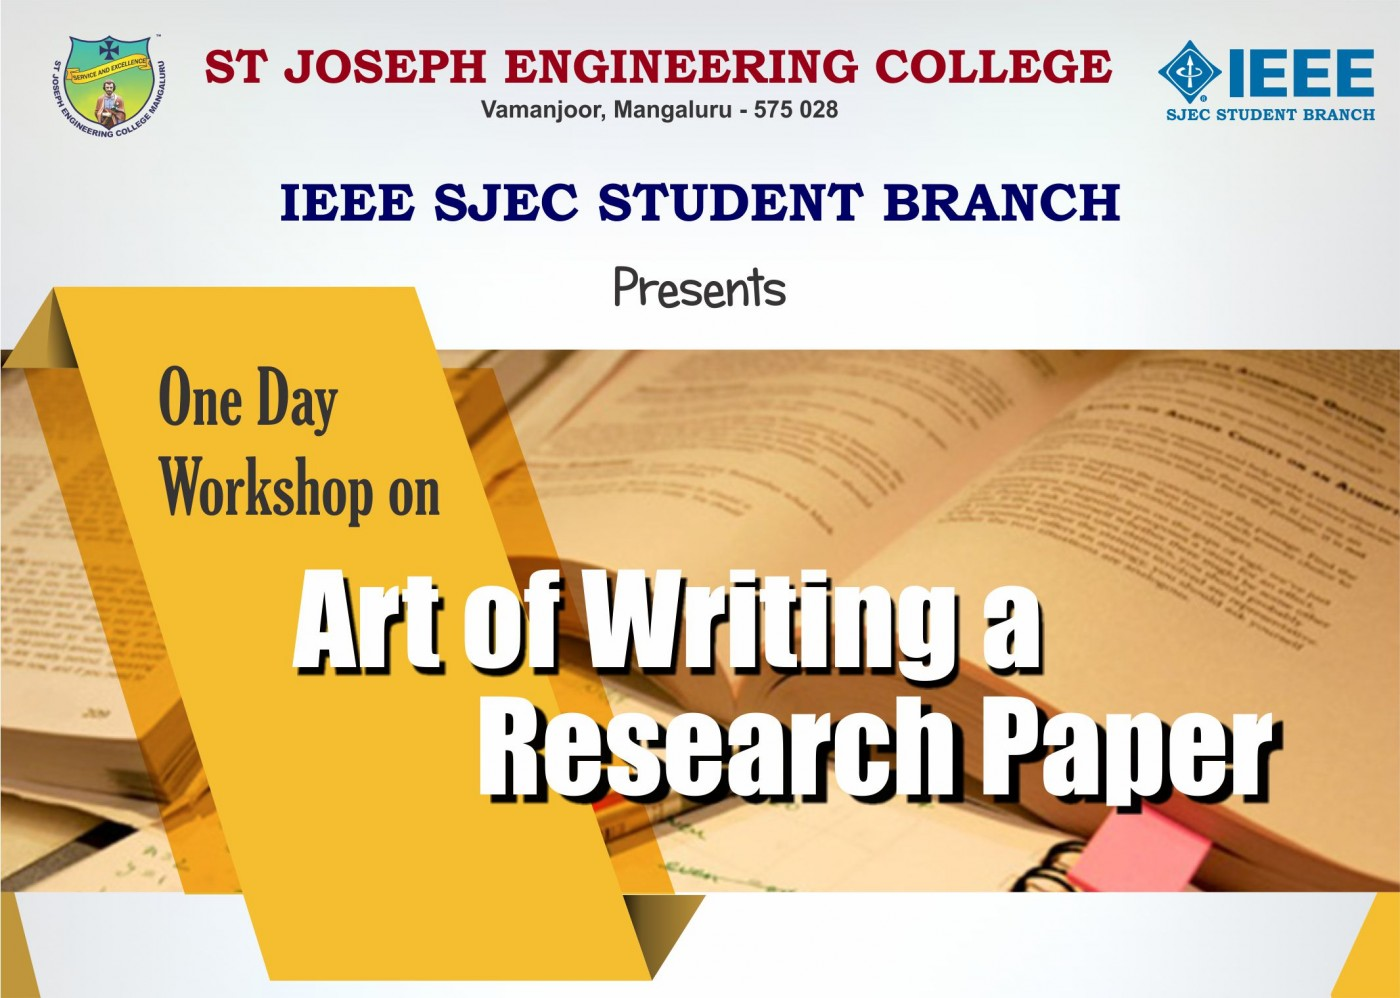 008 Workshop Banner Research Paper Writing Phenomenal The A Handbook 8th Edition Papers Complete Guide 16th Pdf James D Lester 1400